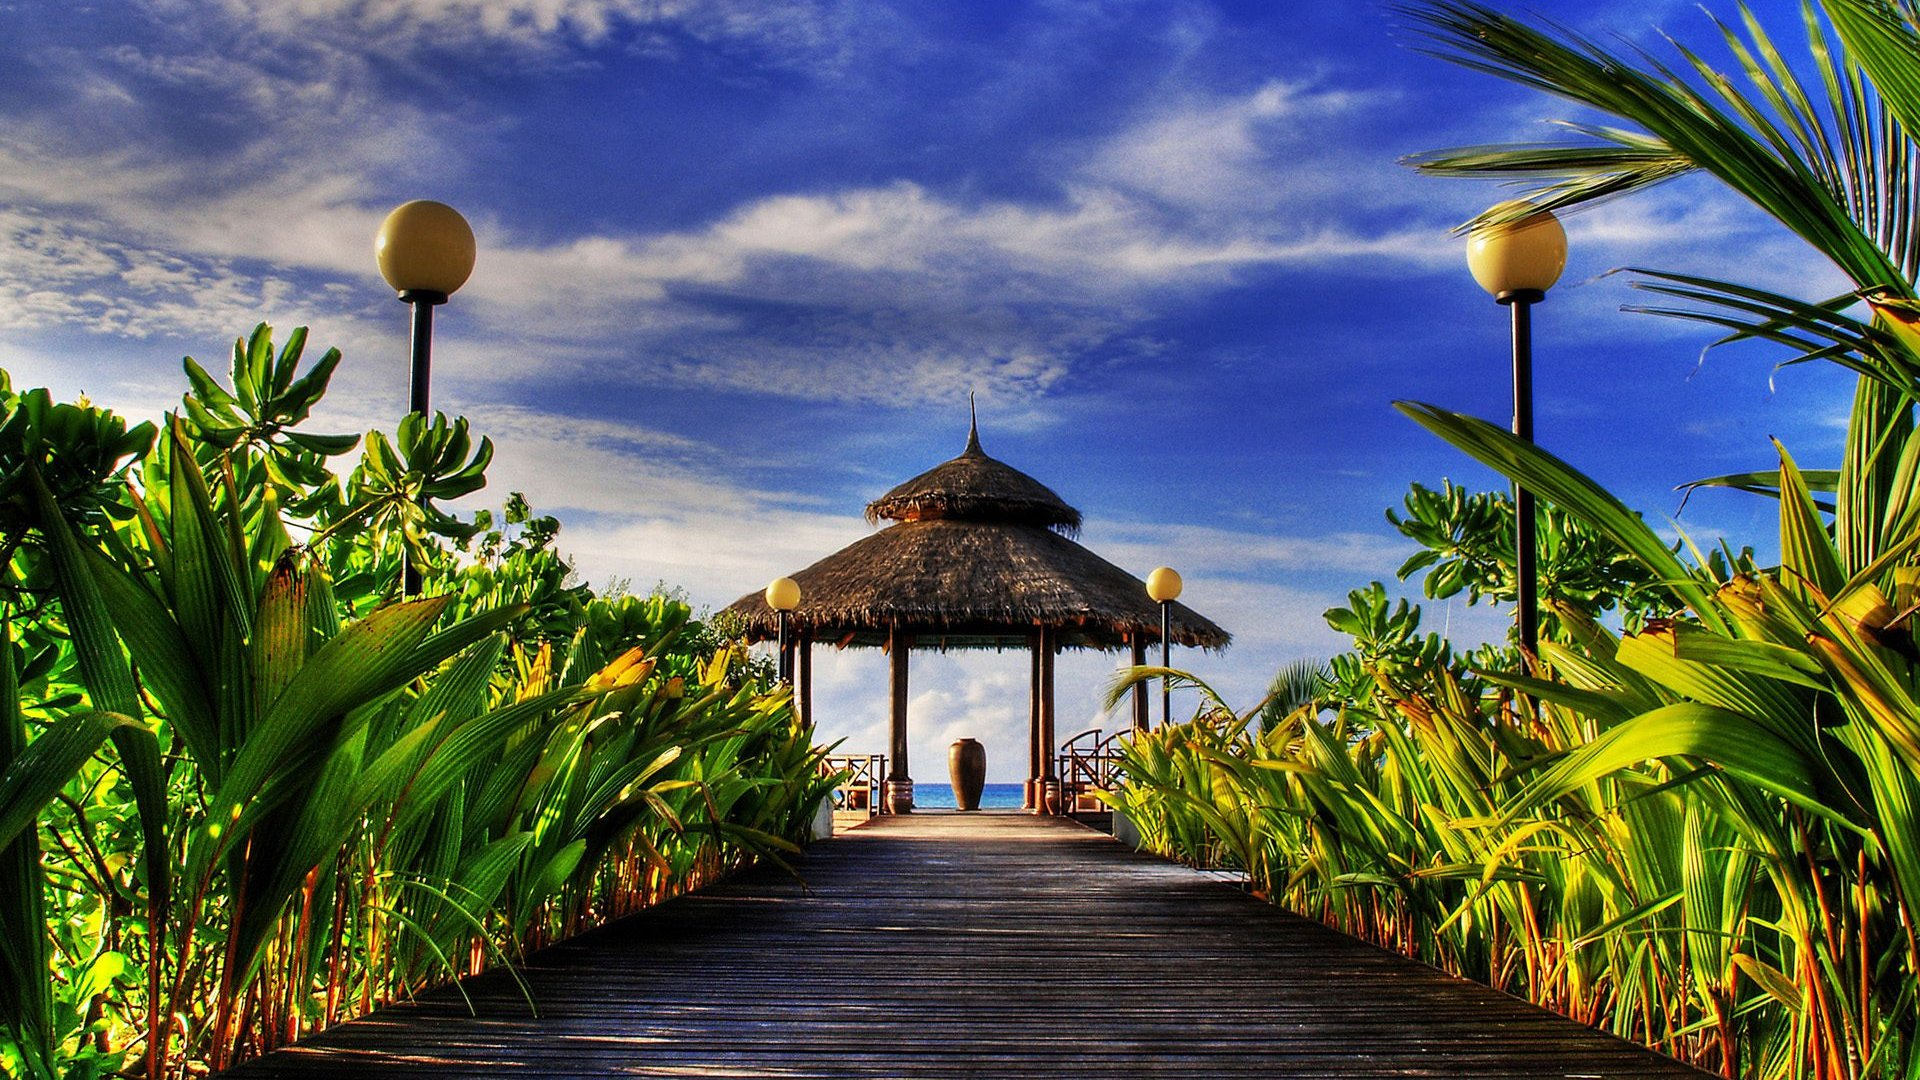 Welcome Paradise HDR Wallpapers HD Wallpapers 1920x1080